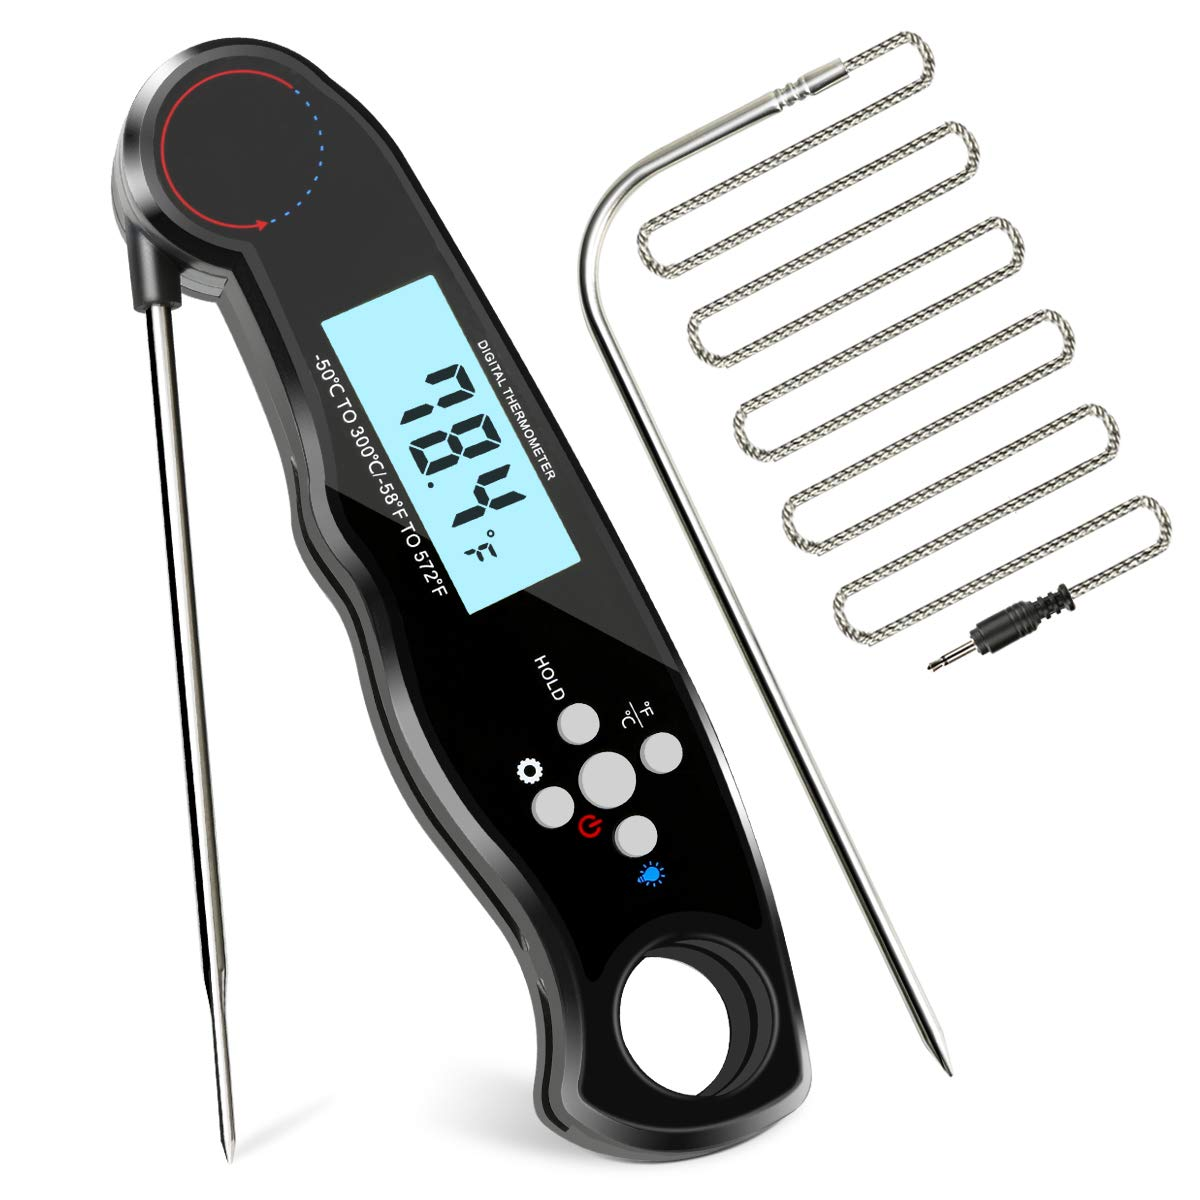 Instant Read Meat Thermometer DotStone Digital Thermometer Built-in Magnet with Backlight Temperature Alarm Function Contains 3.9FT External Probe for Kitchen Outdoor Cooking Grill BBQ Oven